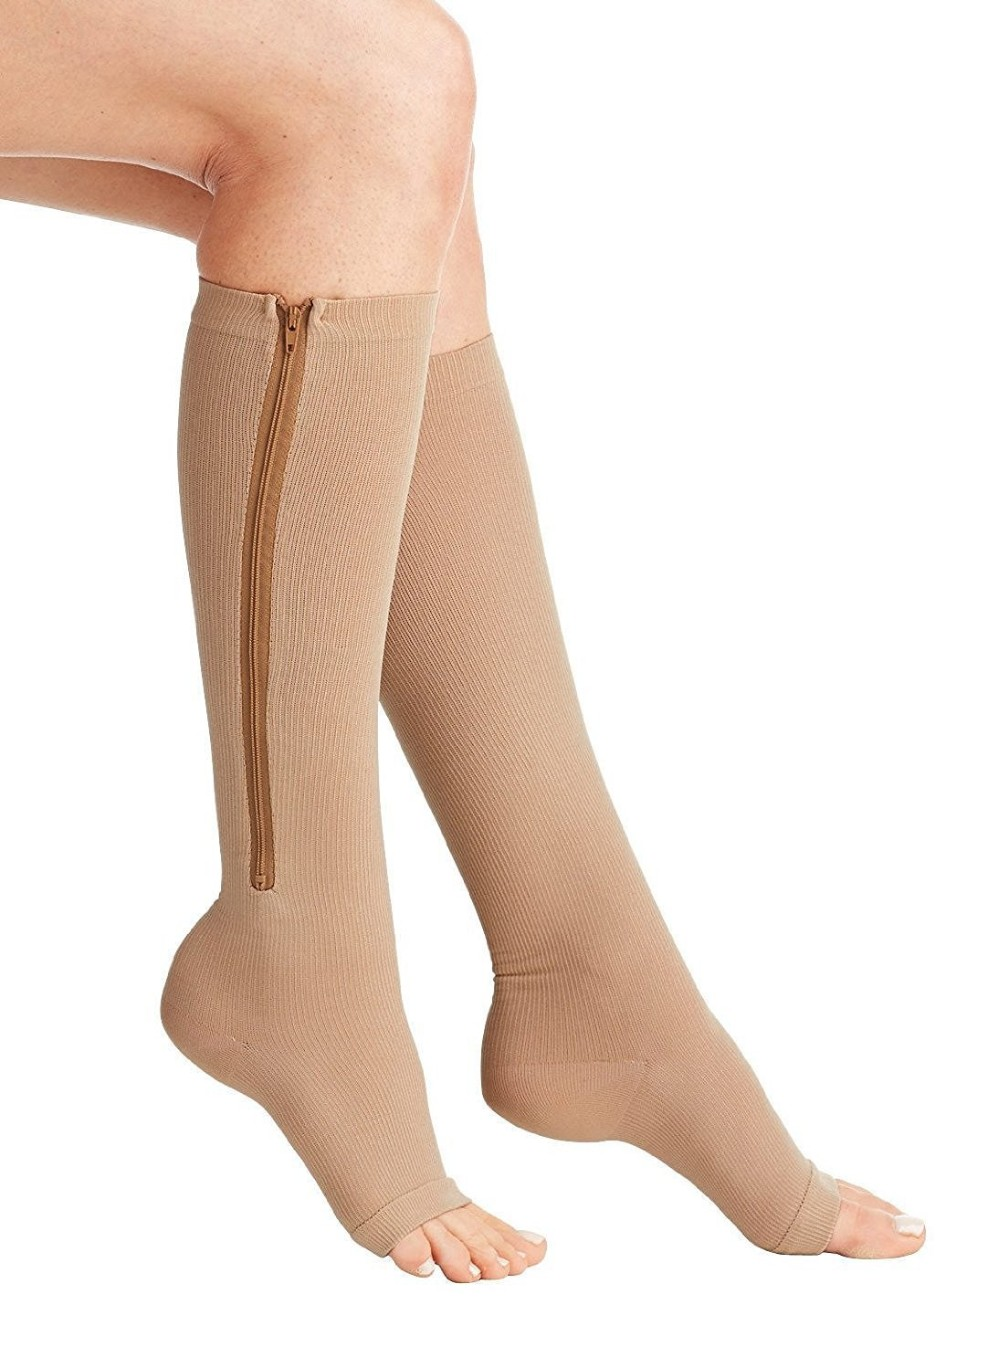 Zipper Compression Socks Medical with Toe Open Knee High Socks for Men Women,Zipper Compression Socks Medical with Toe Open Knee High Socks for Men Women,Zipper Compression Socks Medical with Toe Open Knee High Socks for Men Women